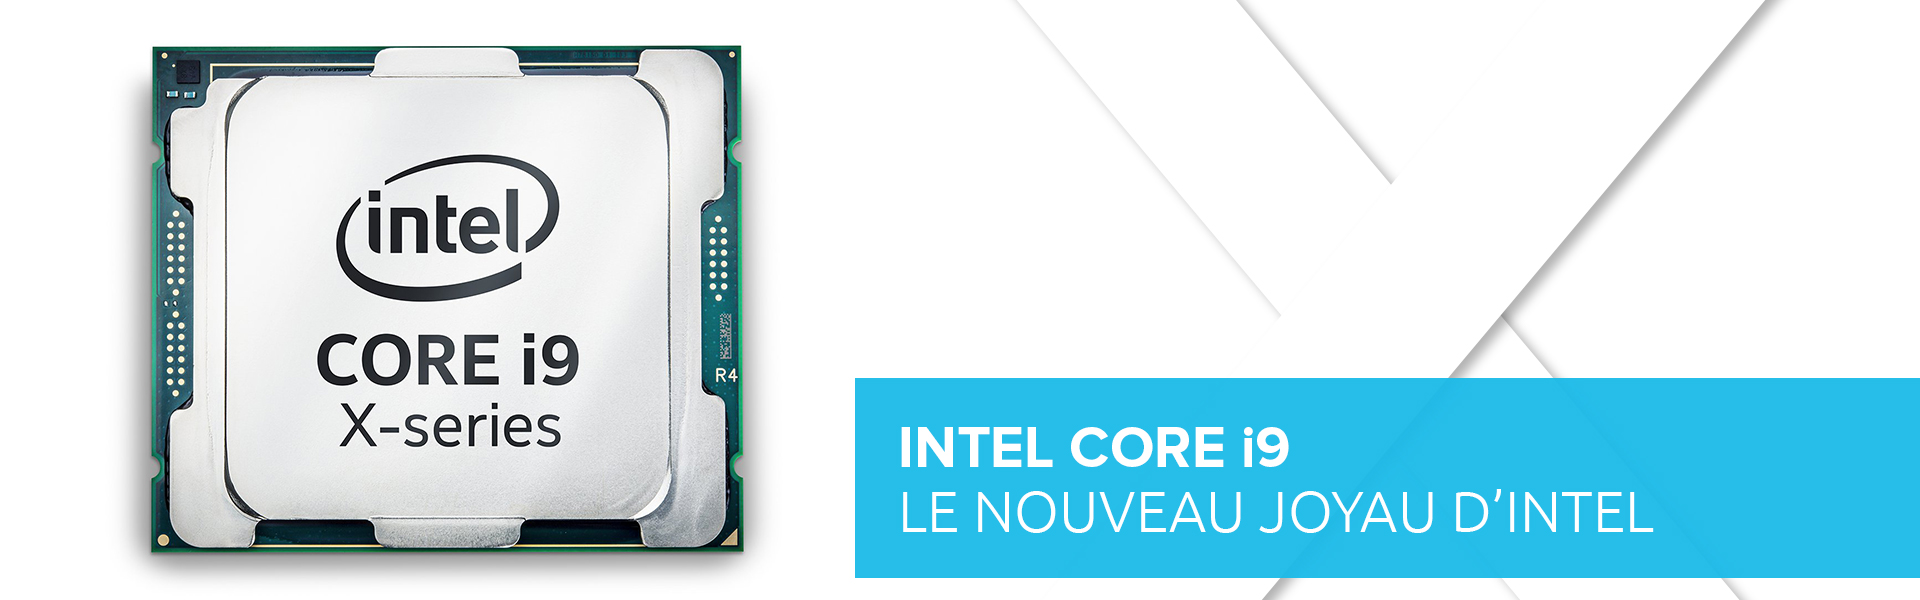 intel-core-i9-actualité-trade-discount-3